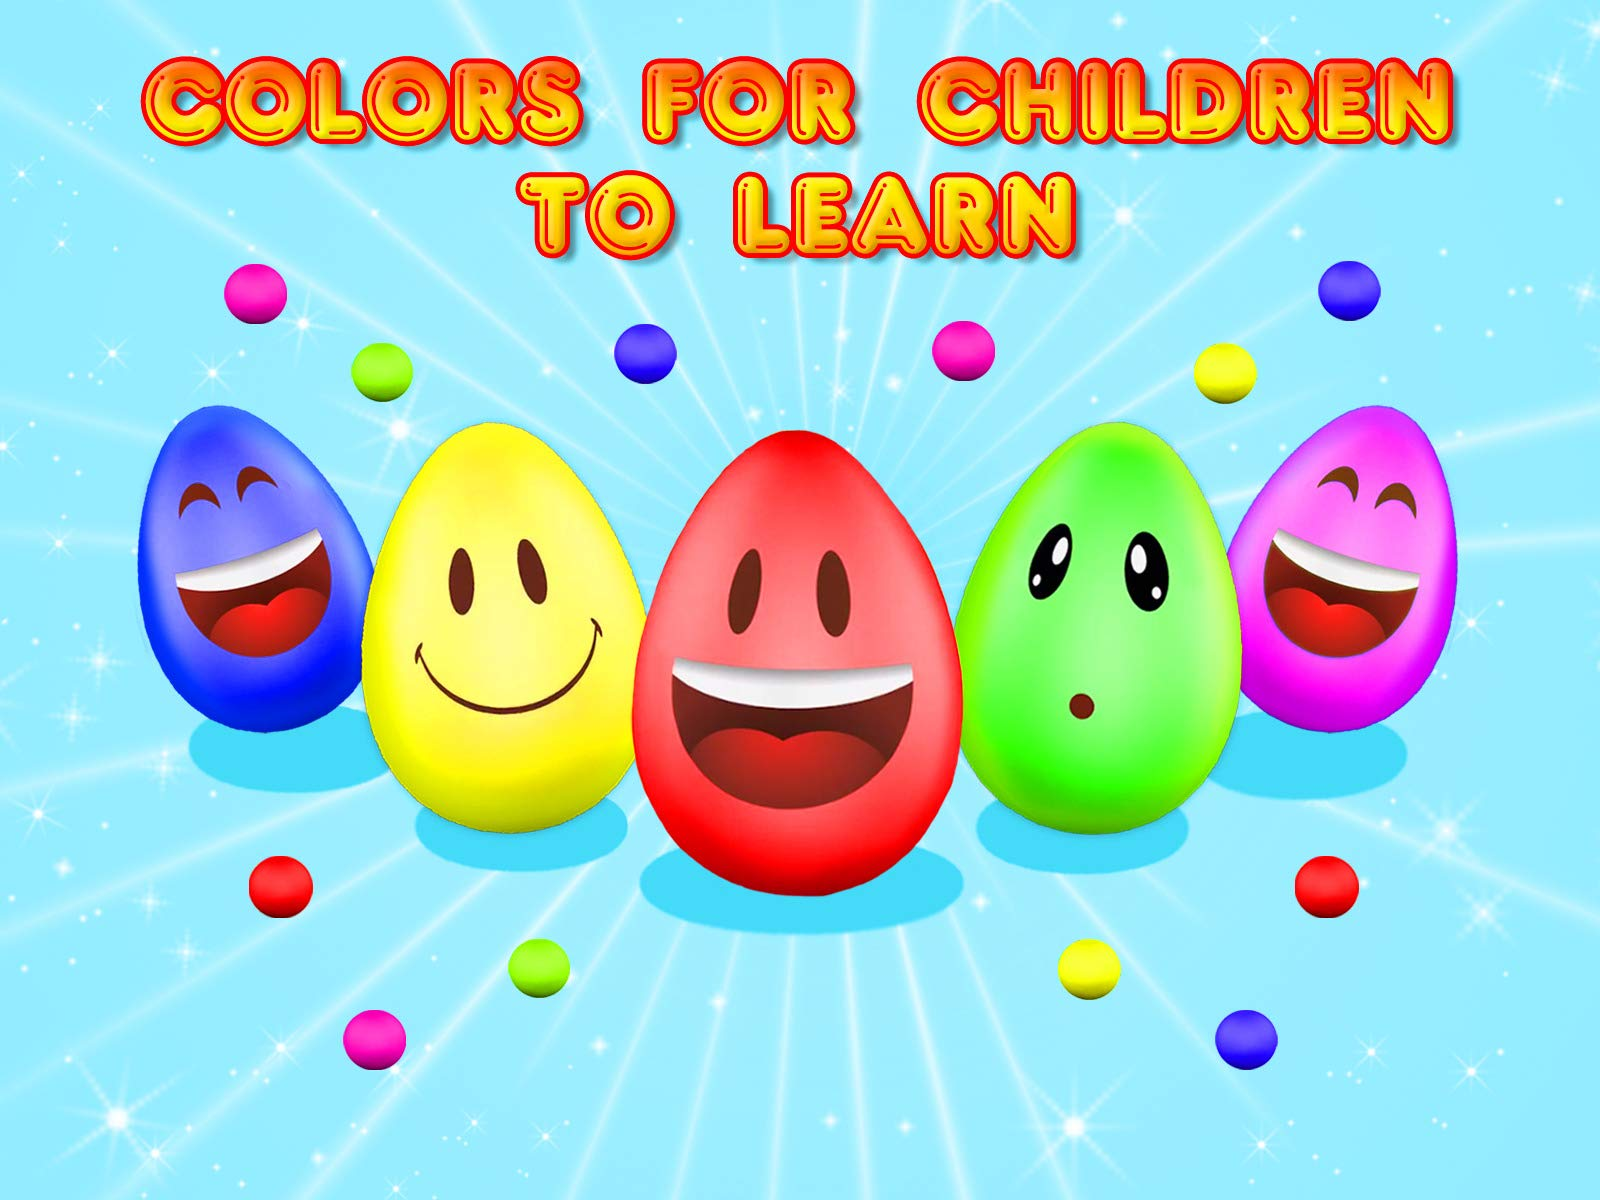 Colors for Children to Learn - Season 2